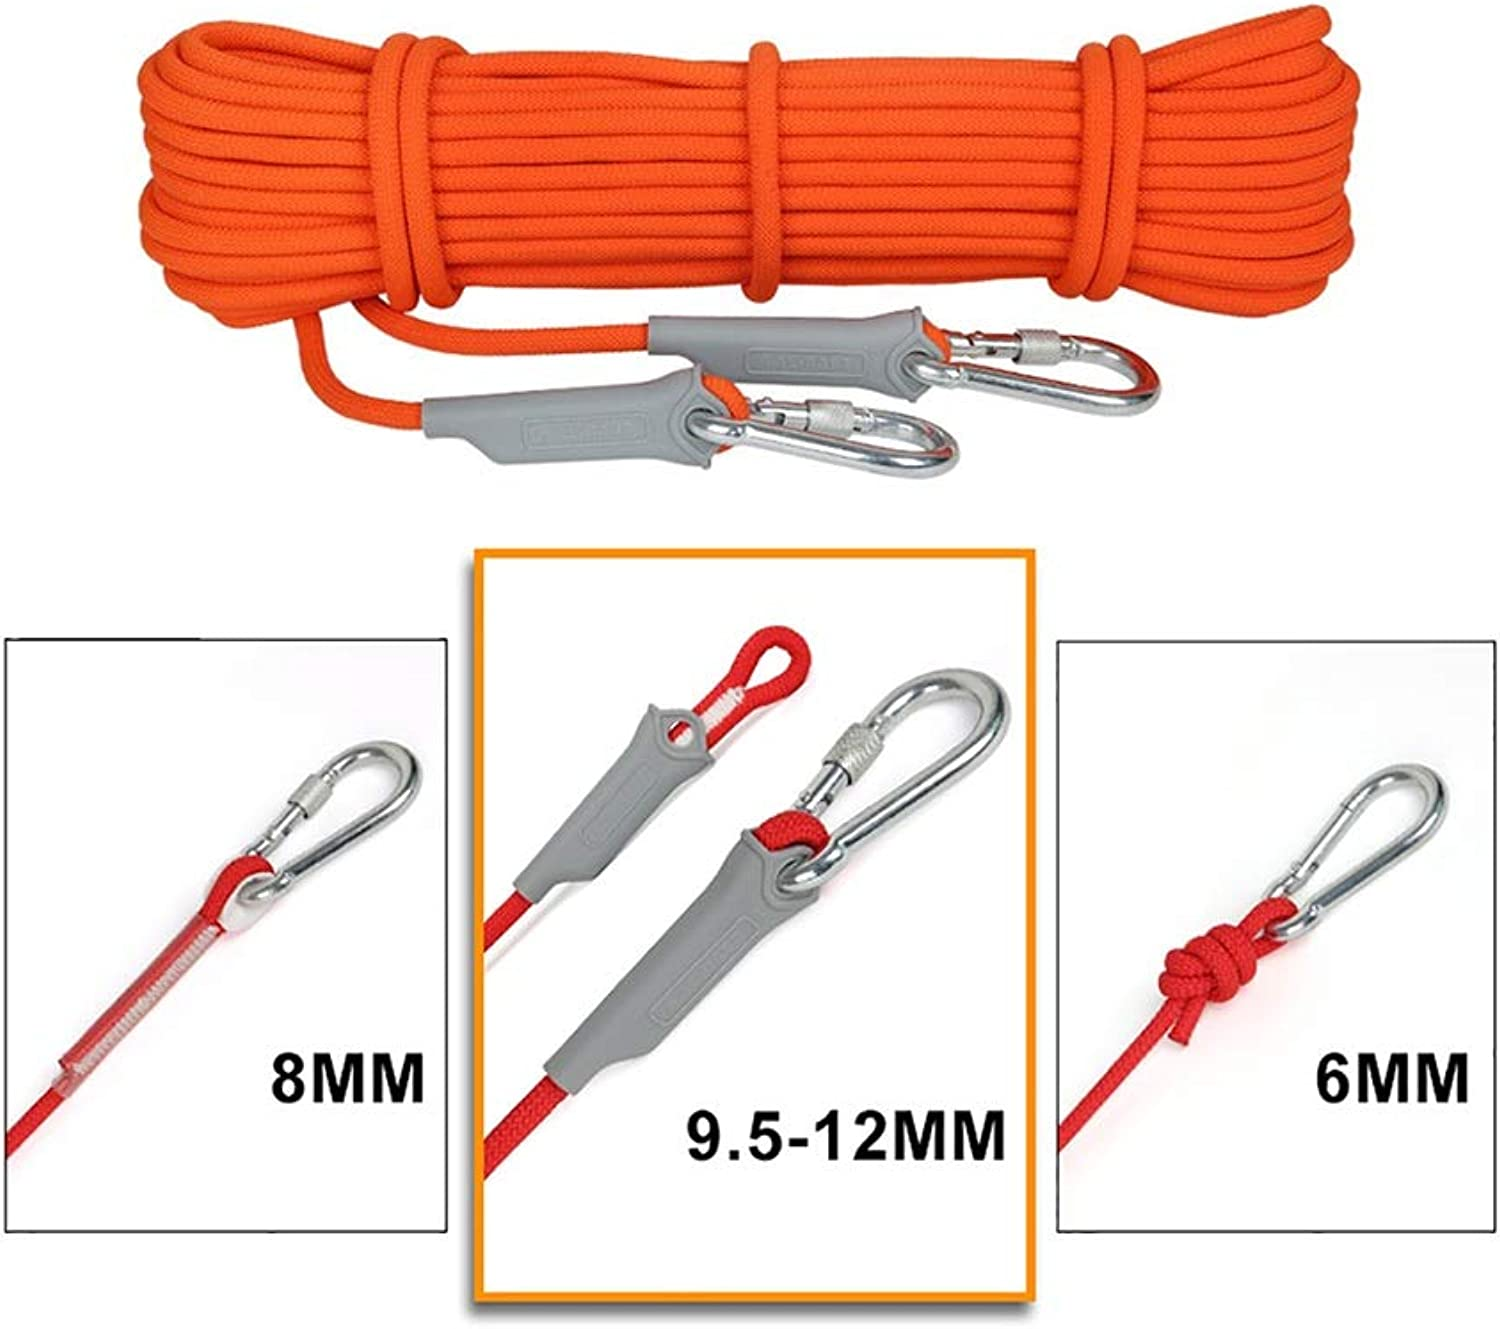 Mountaineering Rope 6MM 8MM 9.5MM 12MM (color Please email Description)